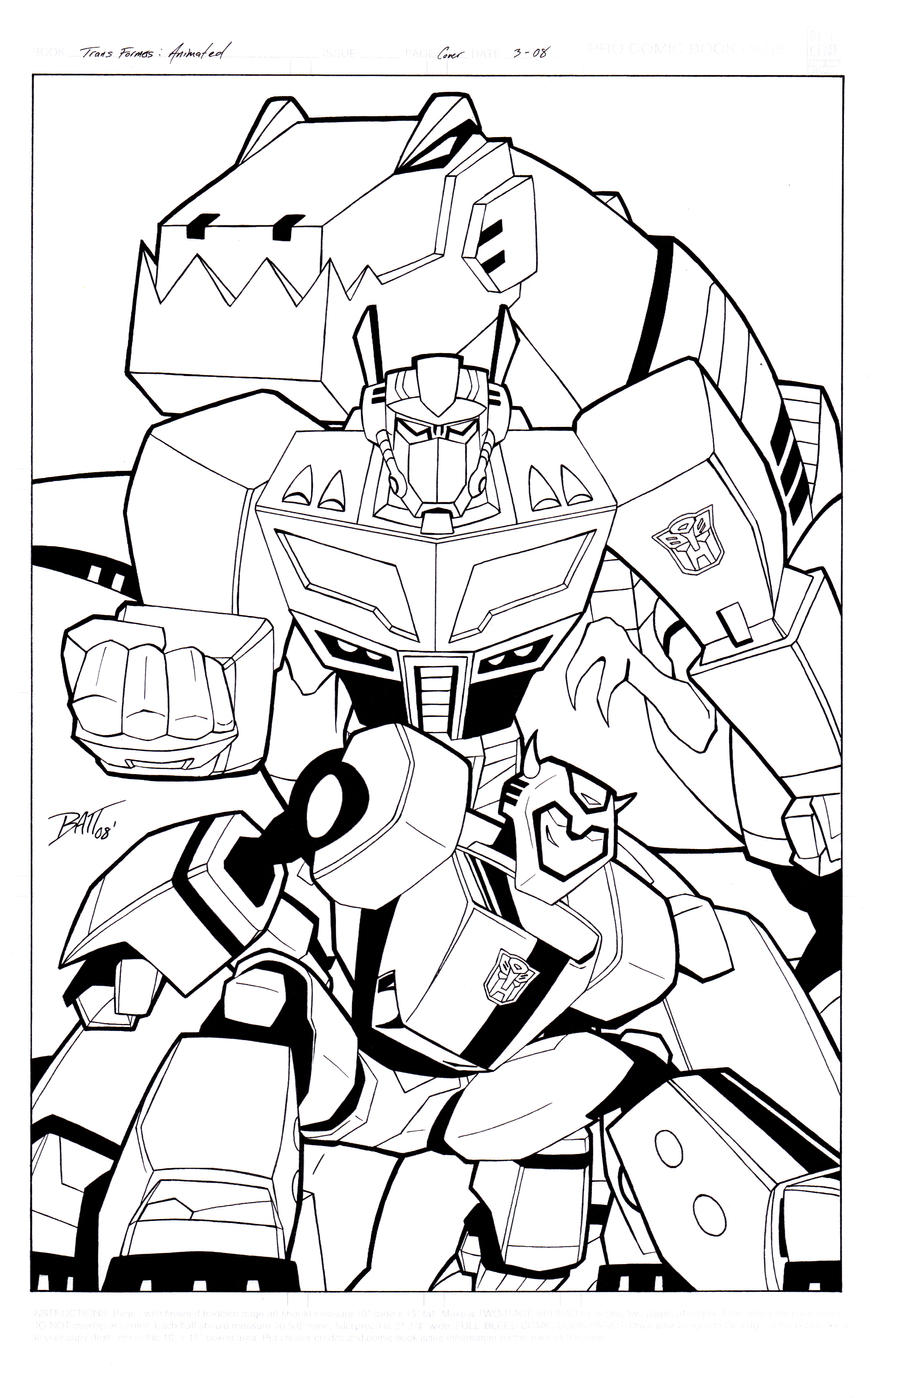 Transformers Animated poster by Venom20XX on DeviantArt